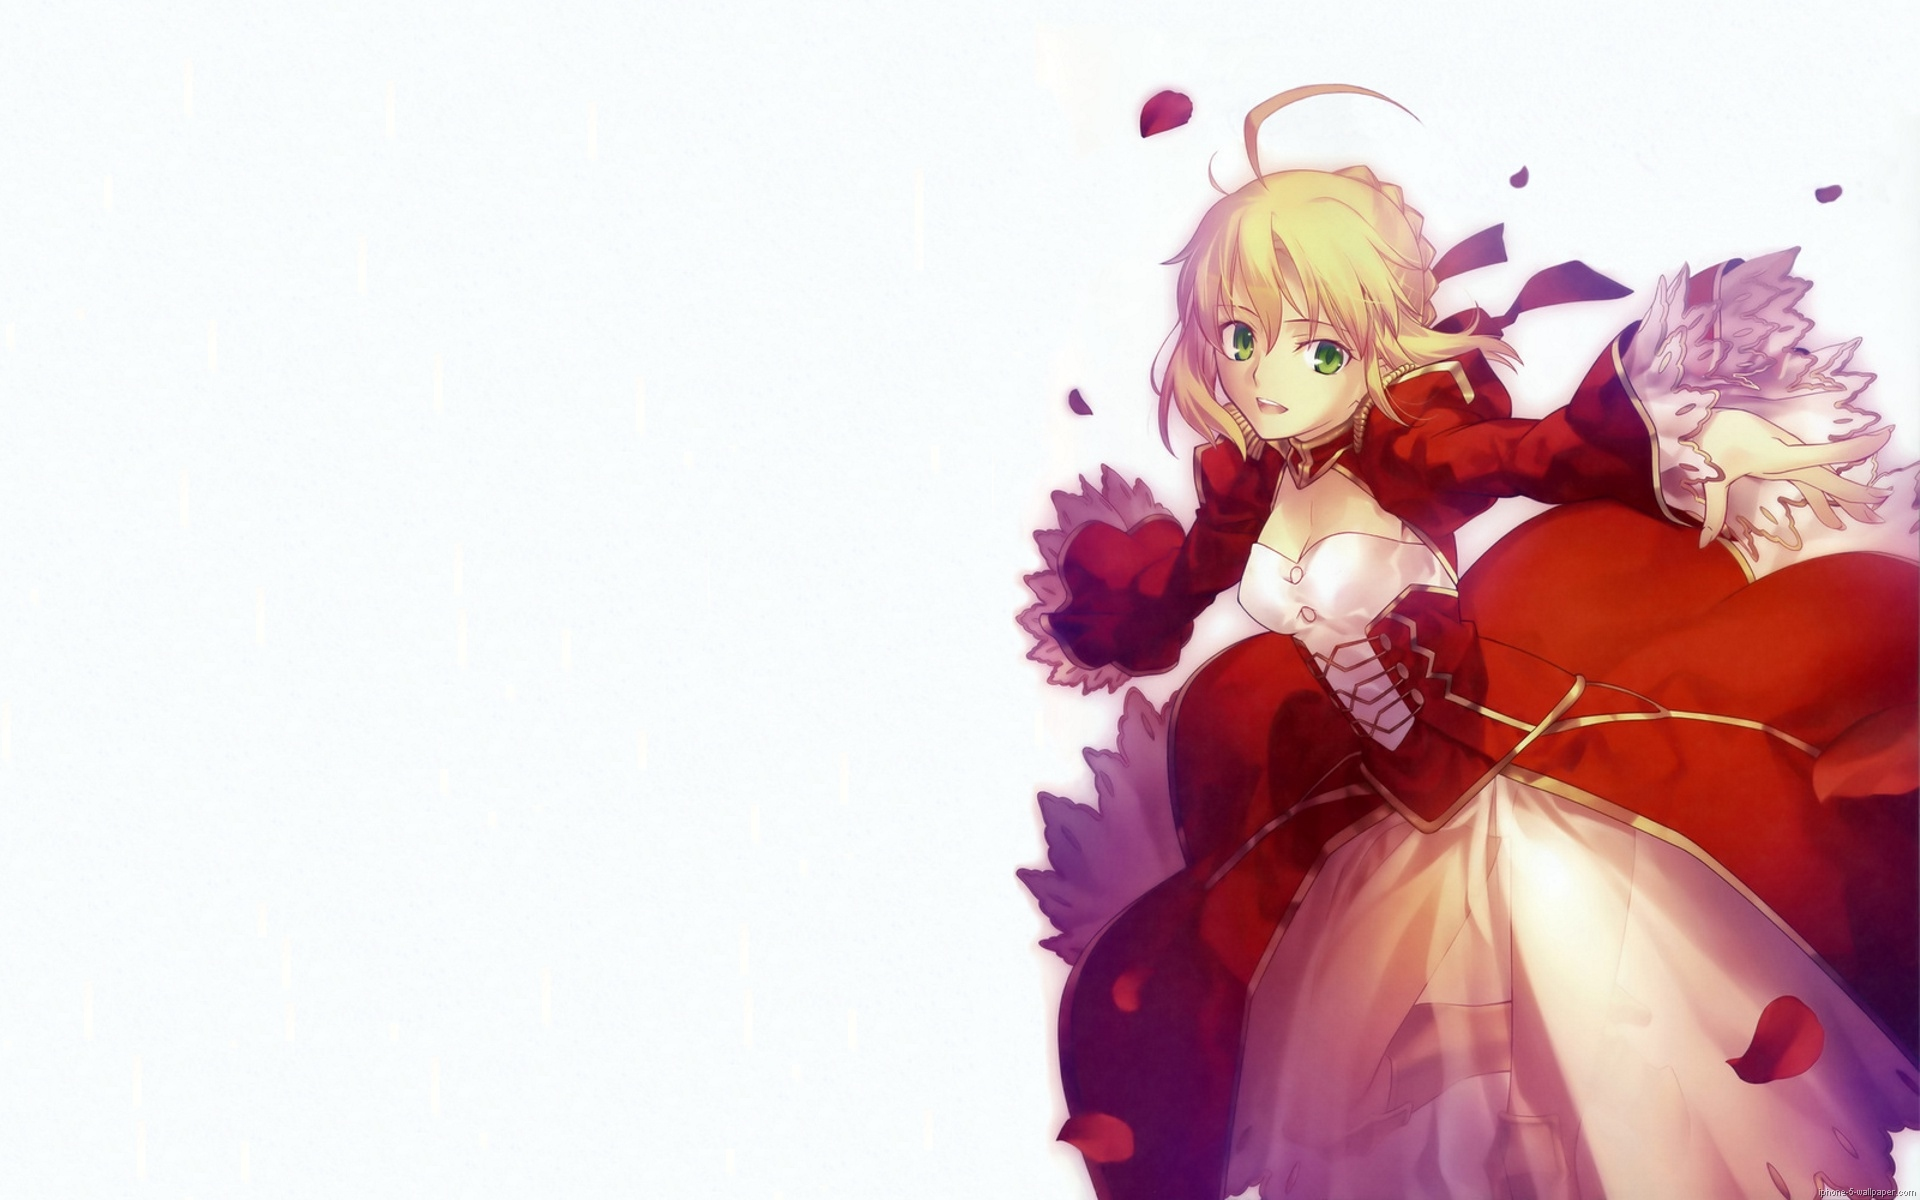 Anime HD Wallpapers 7 HD Wallpaper Backgrounds Photos Pictures 1920x1200